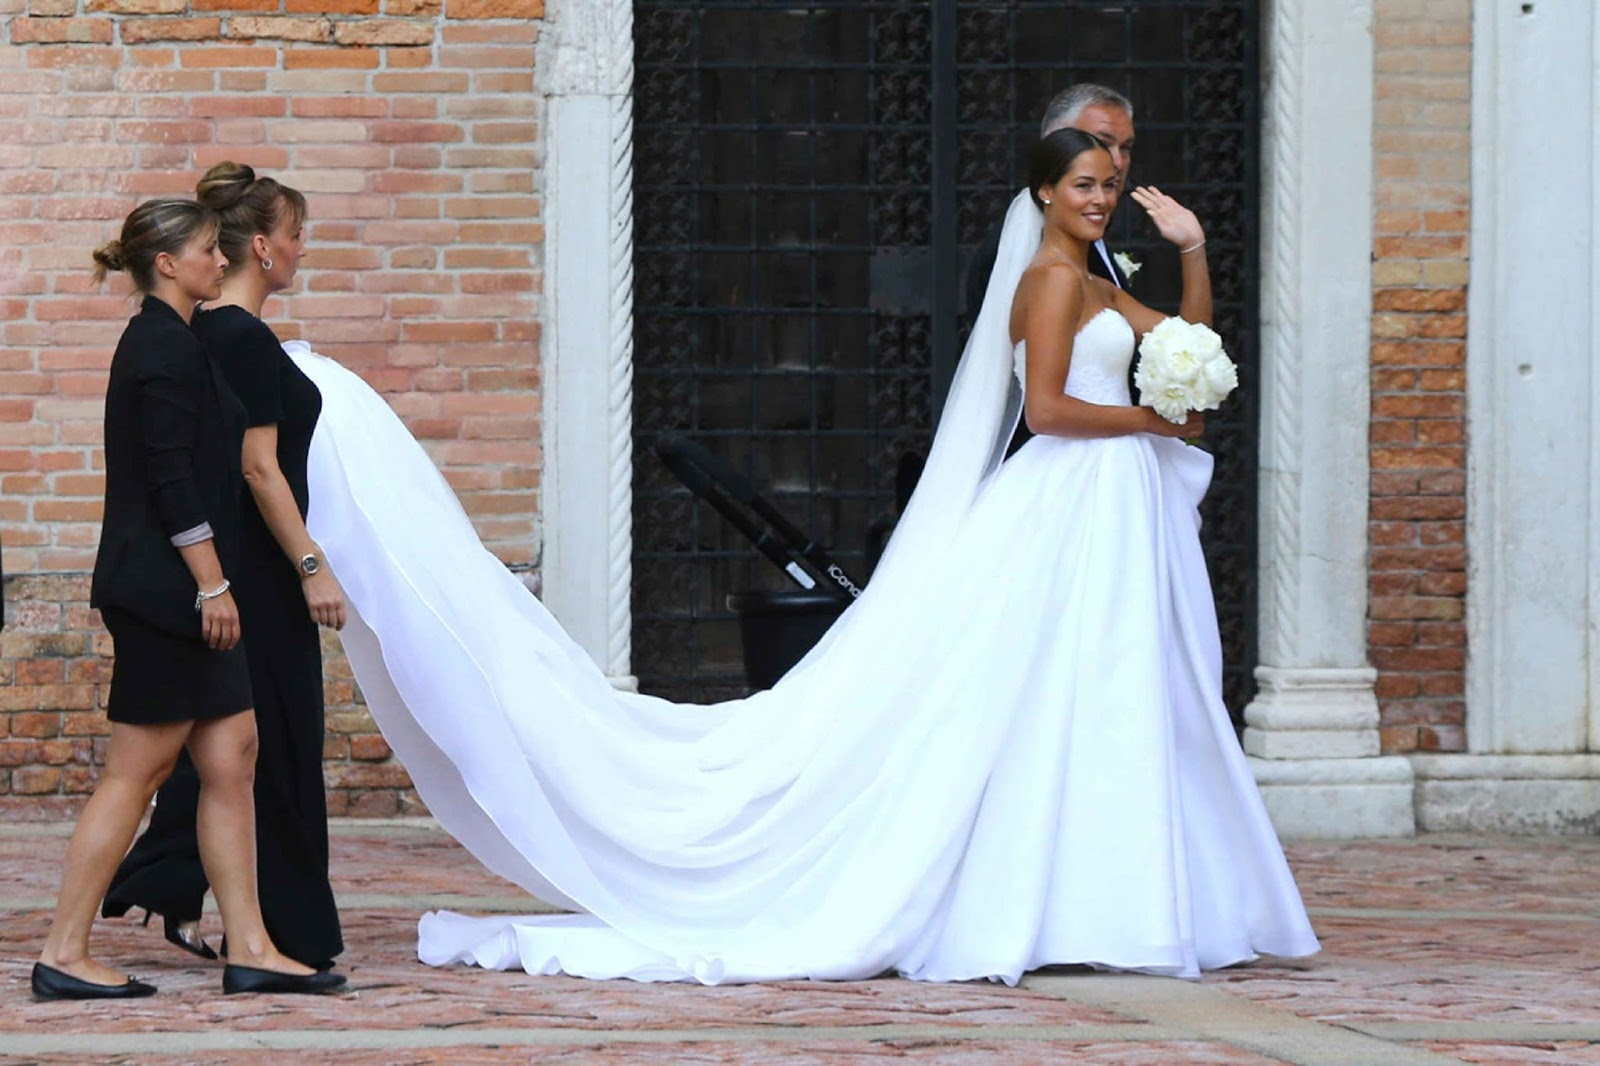 ANNA IVANOVIC WEDDING